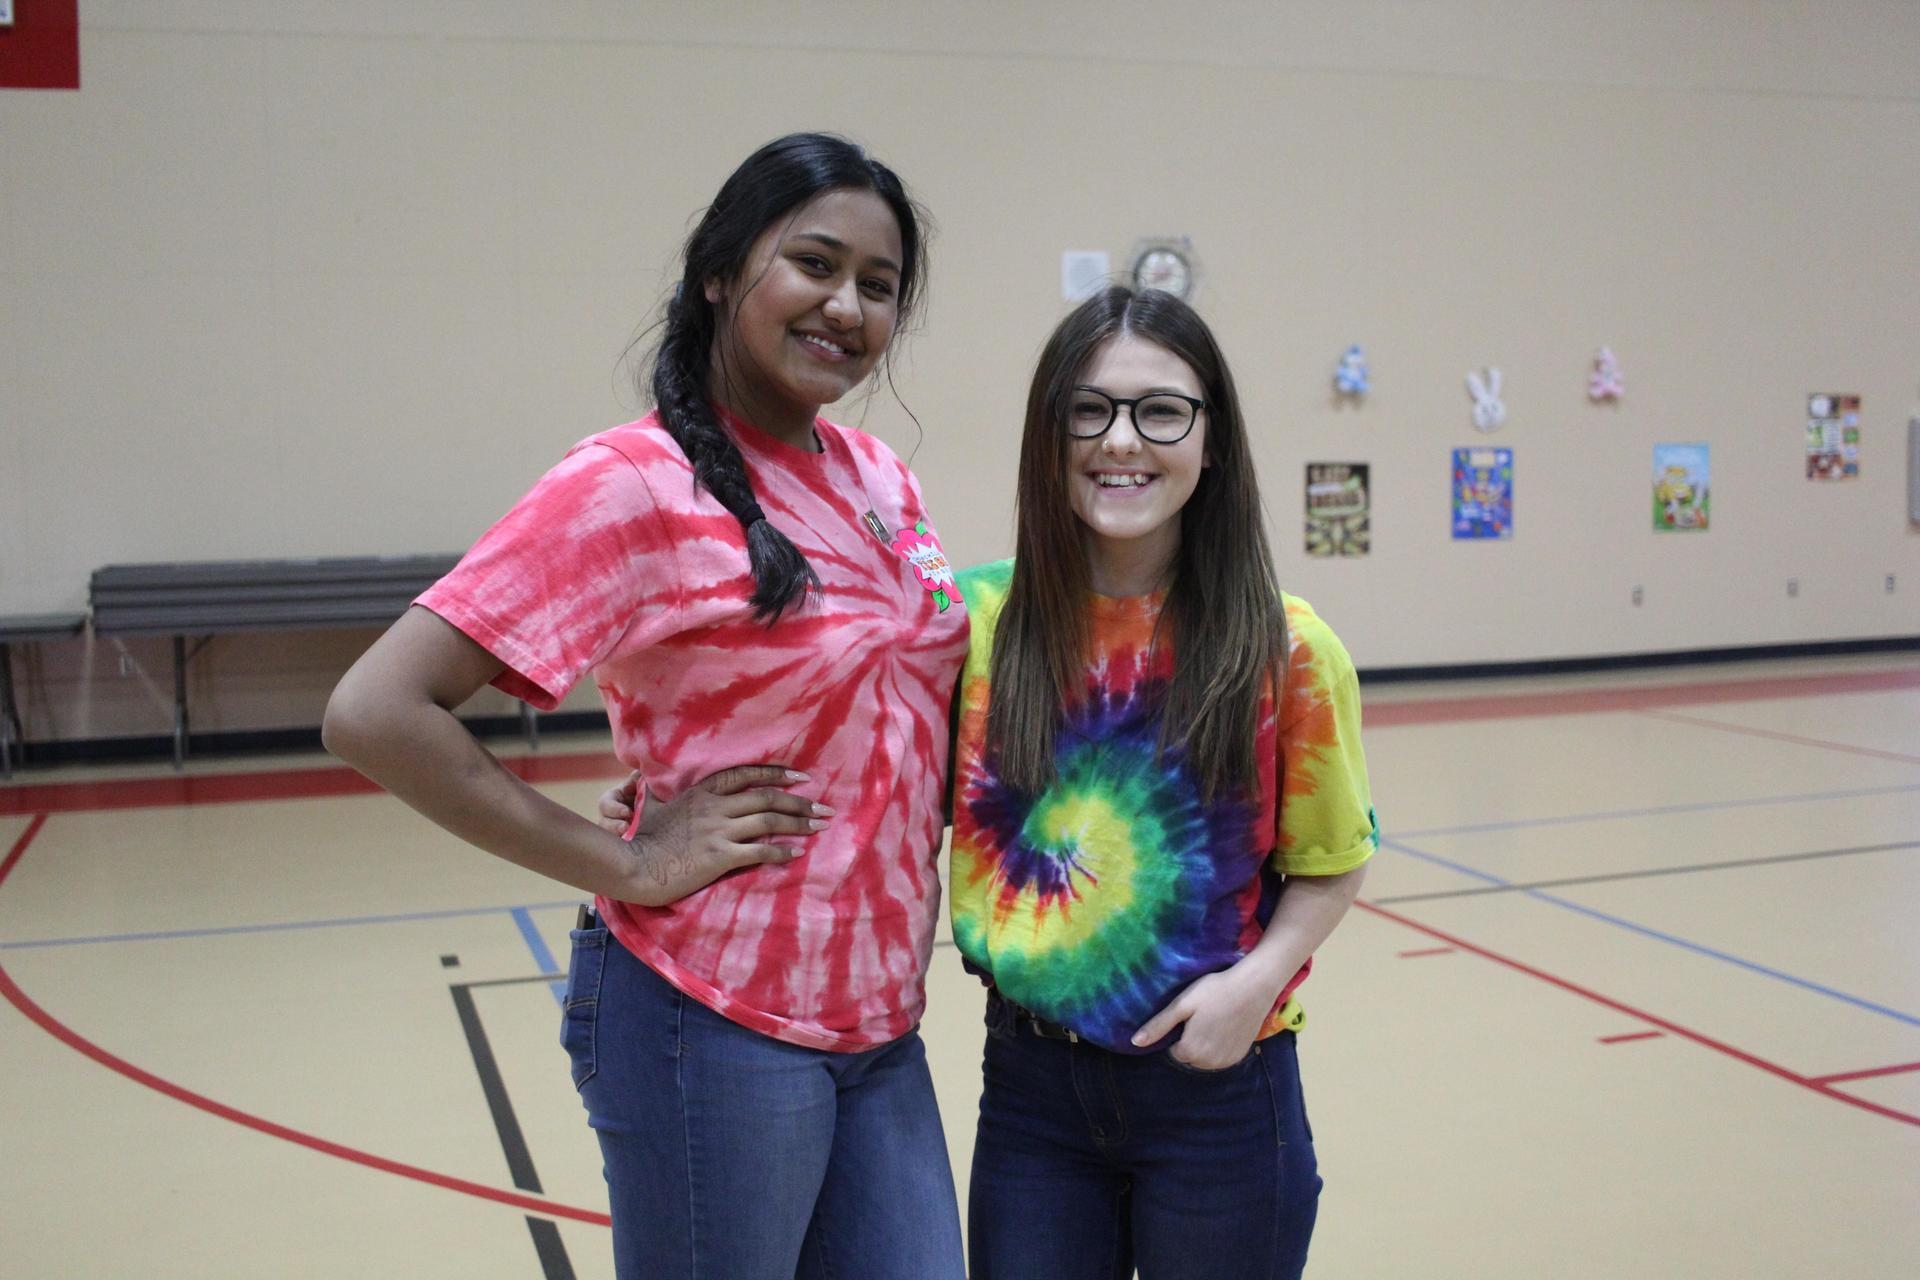 Students dressing up for Spring Week Tie Dye Tuesday